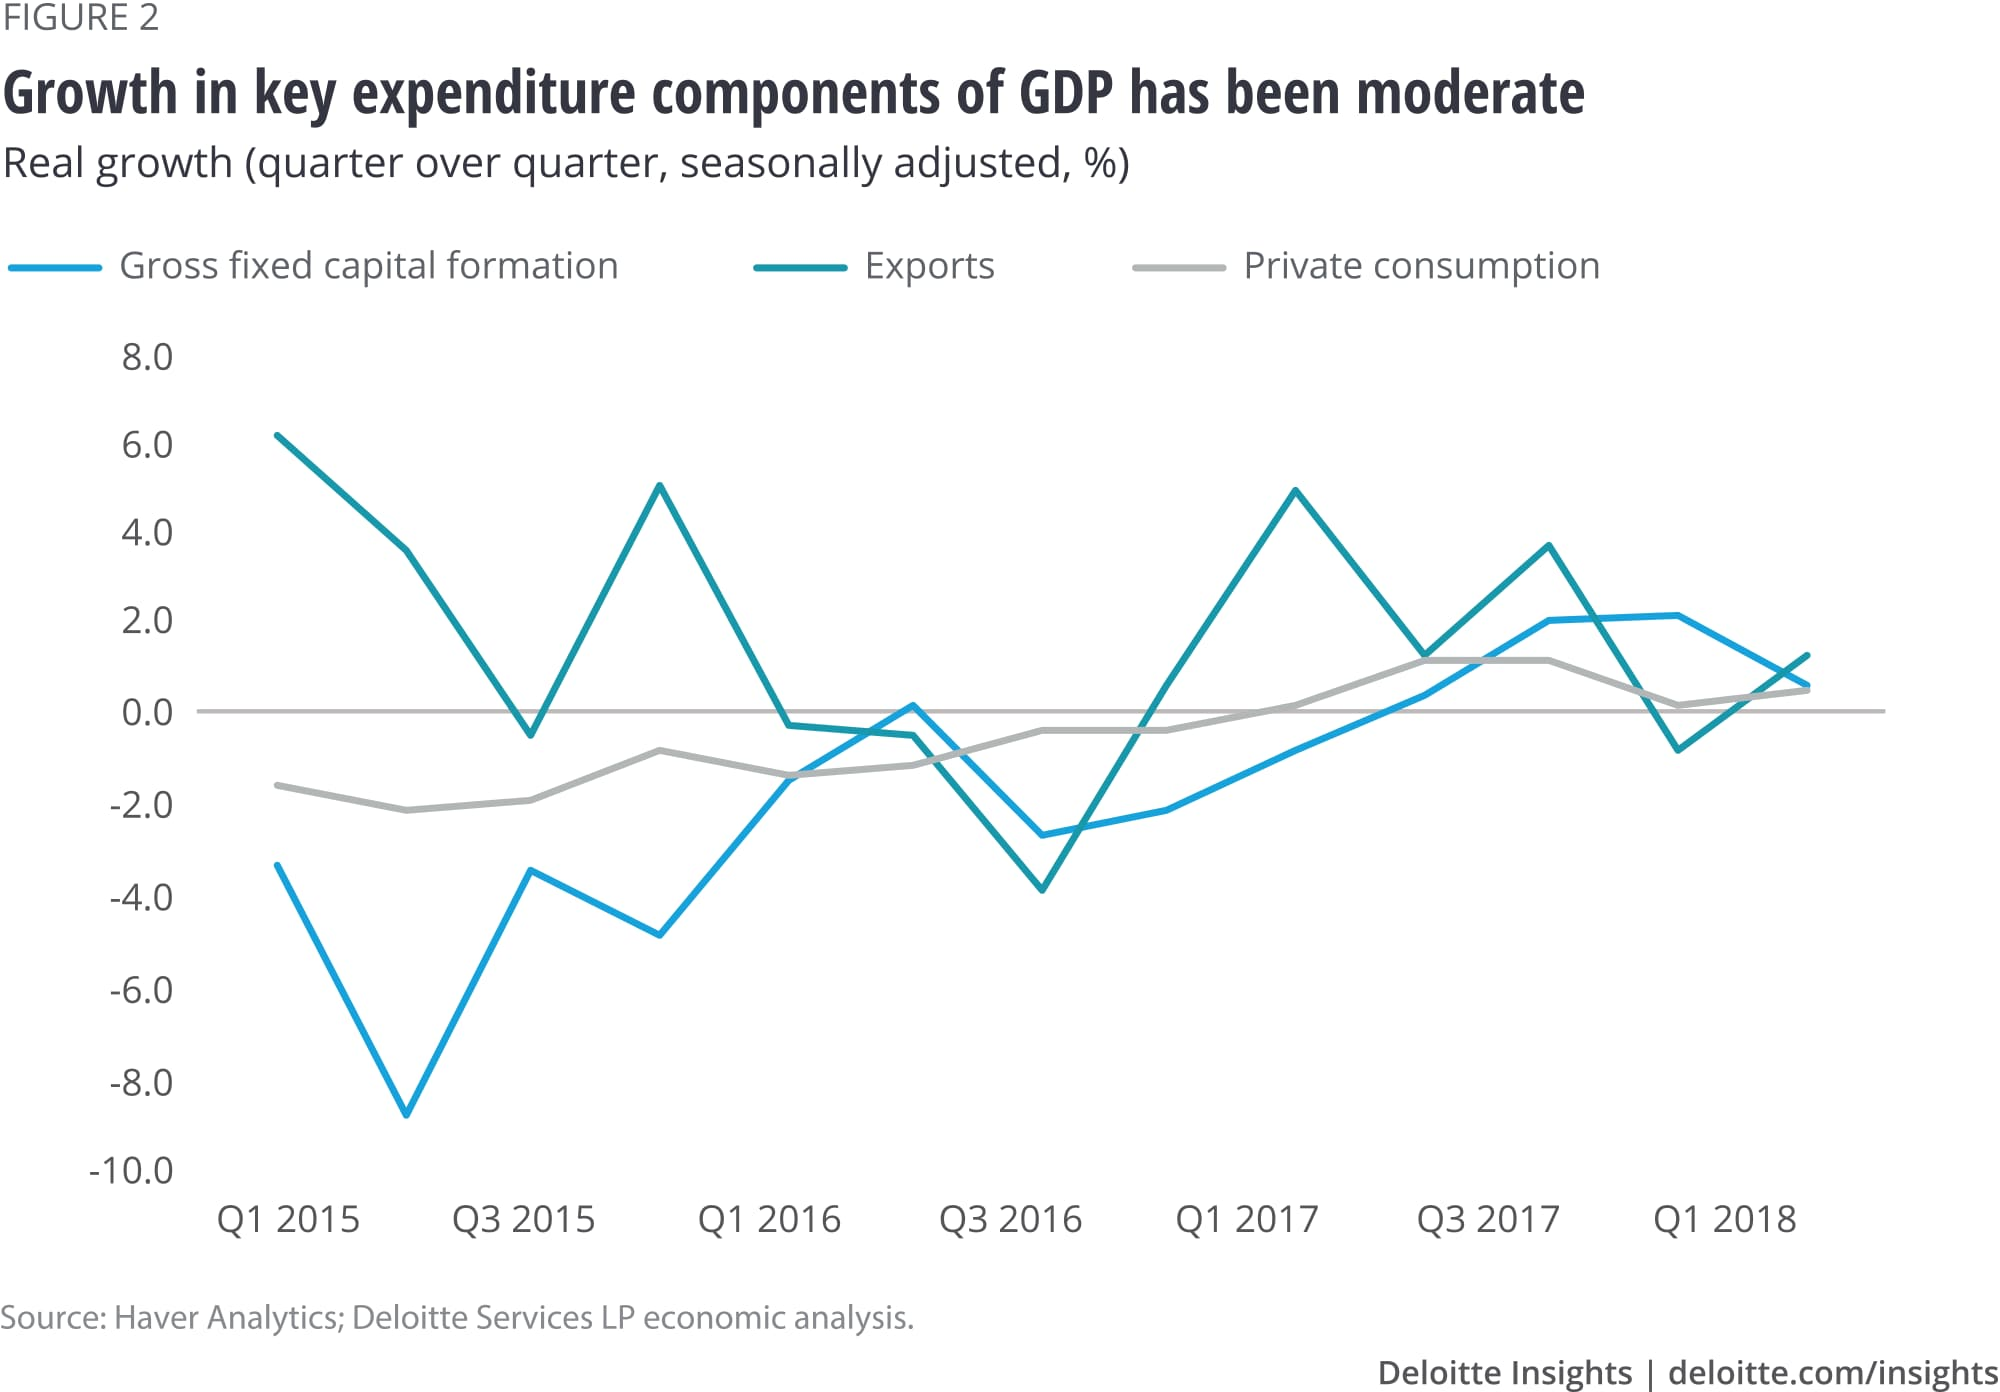 Growth in key expenditure components of GDP has been moderate